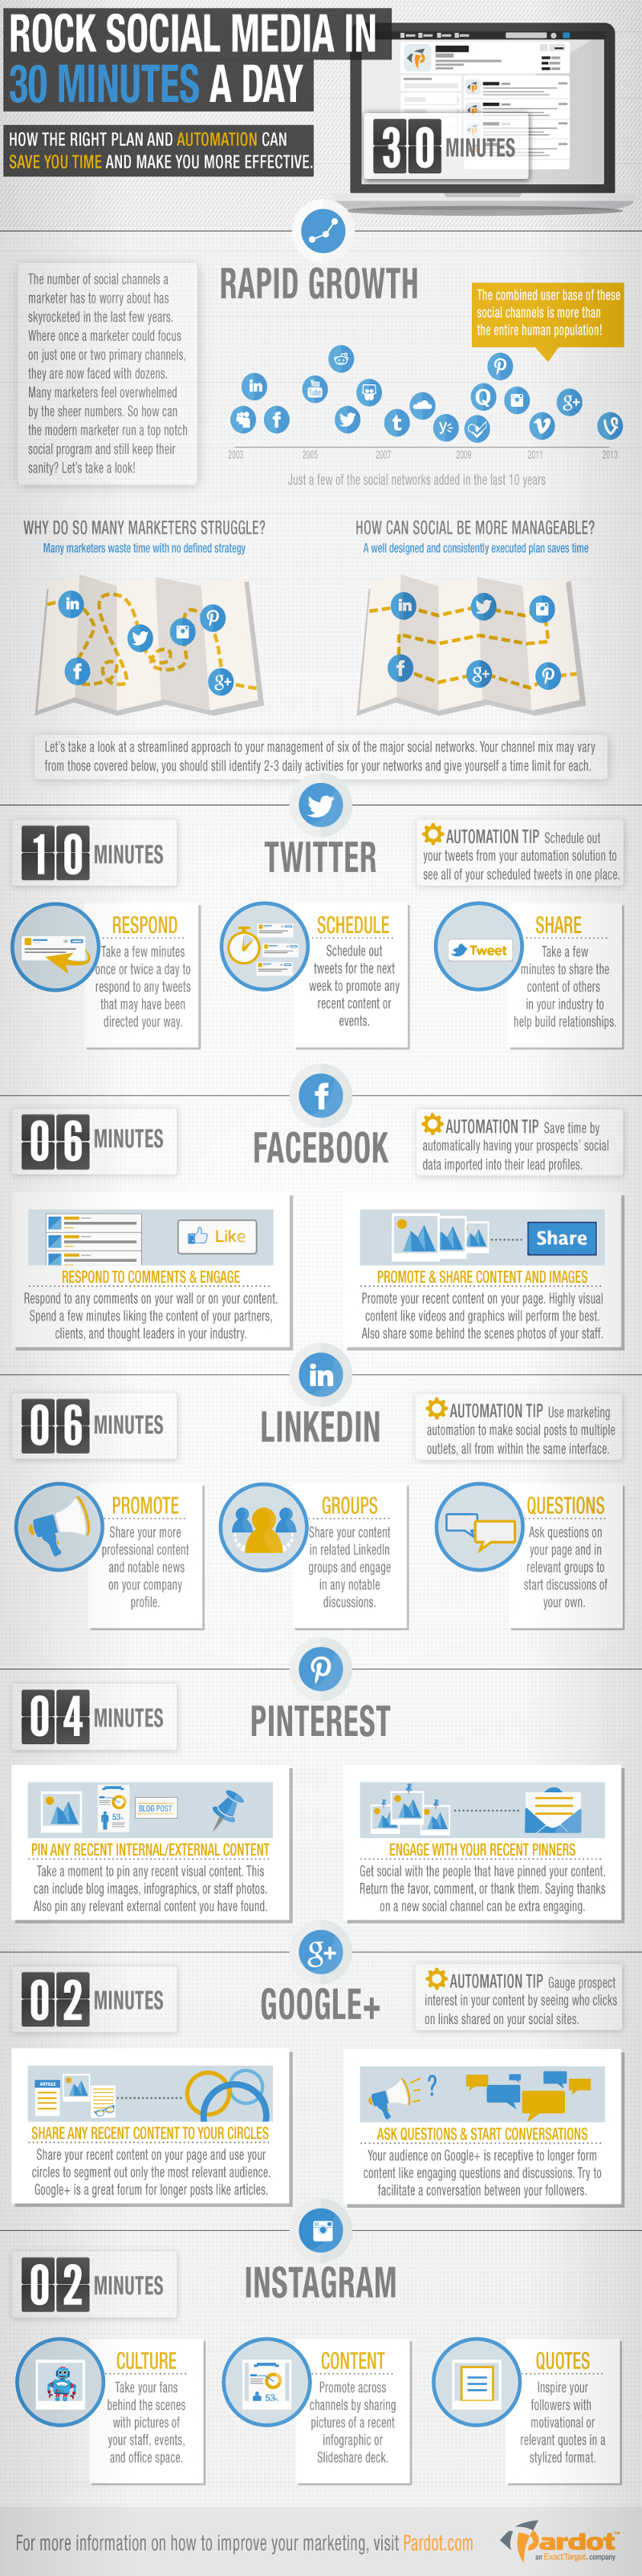 Great Social Media Marketing in 30 Minutes a Day